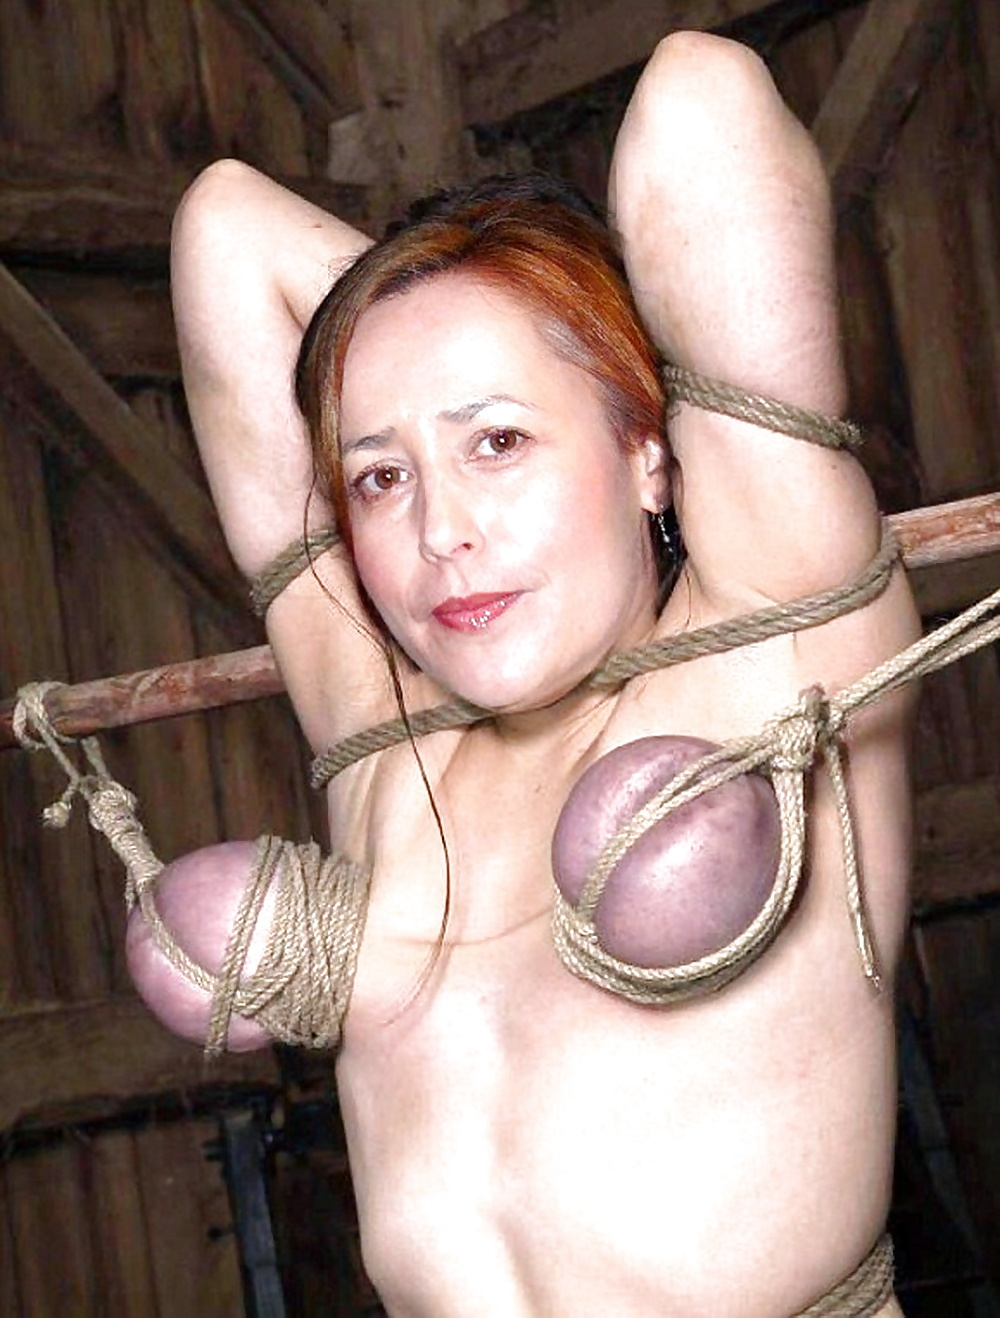 Soft Bdsm, Very Exciting And Teasing - 21 Fotos - Xhamstercom-1448